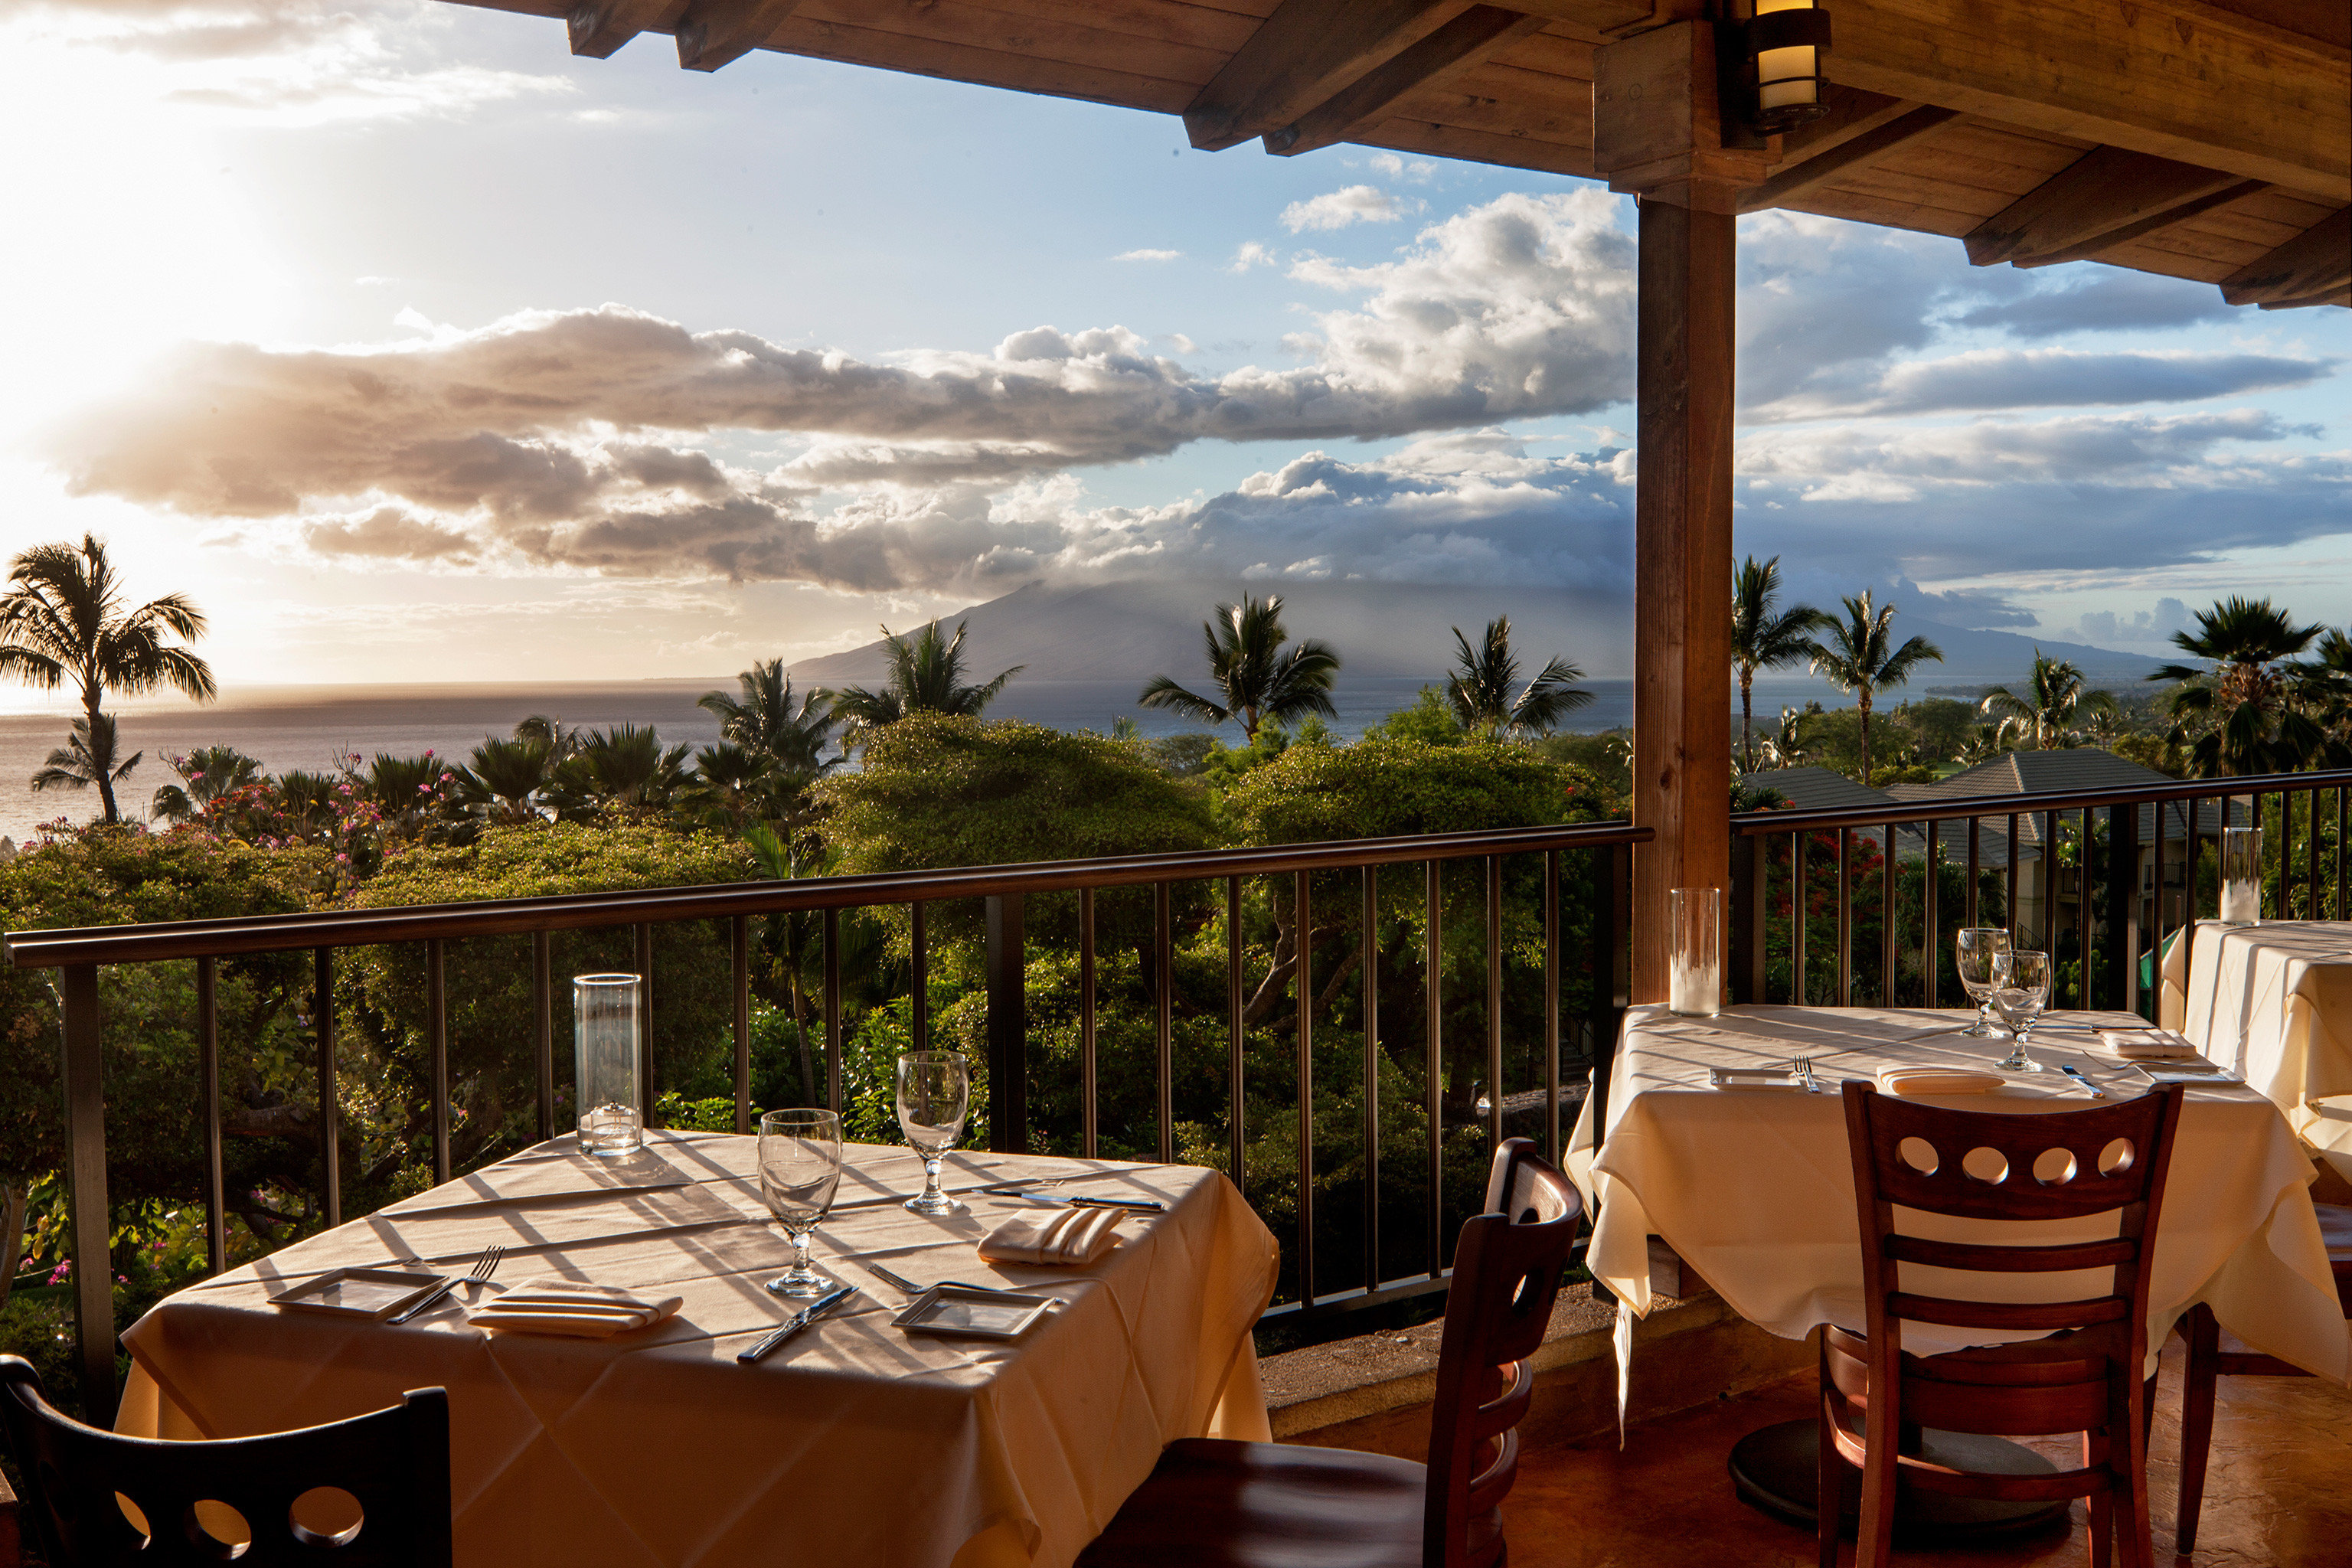 Balcony Bar Beachfront Dining Drink Eat Hotels Island Romance Scenic views Waterfront Wine-Tasting table chair property Resort restaurant estate vacation Villa wooden hacienda meal overlooking area set Deck furniture dining table